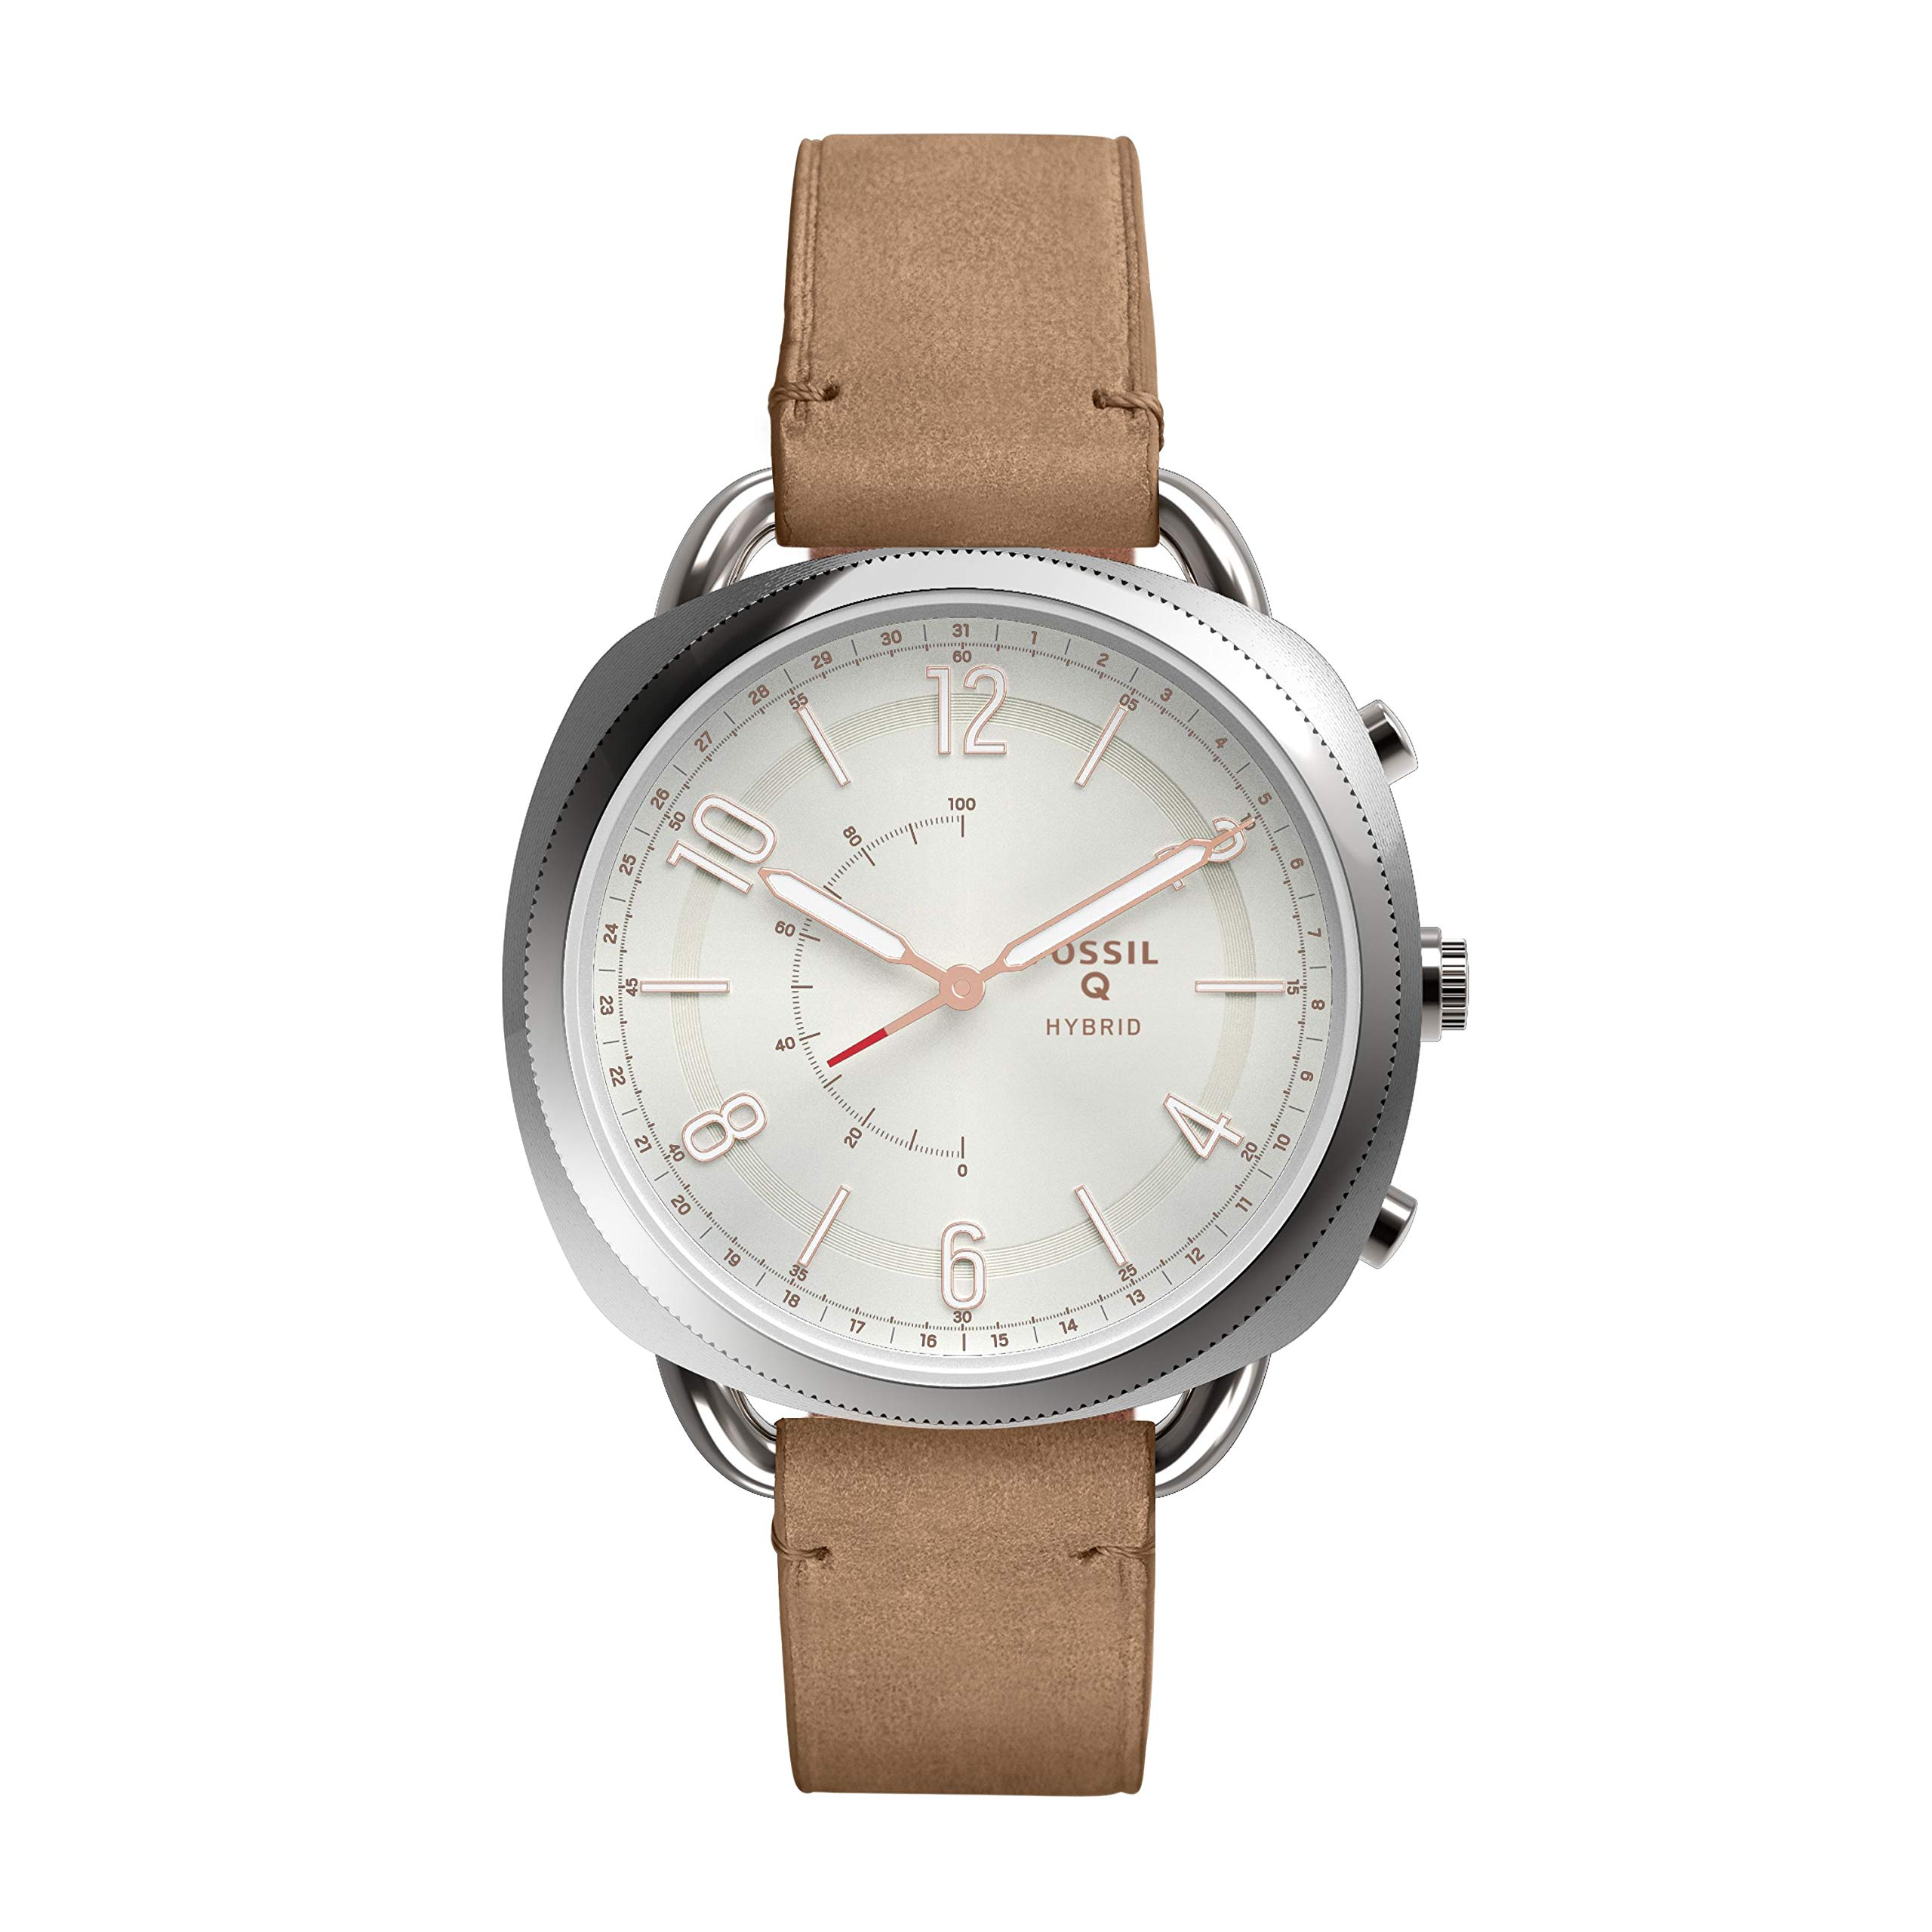 Fossil Women's Accomplice Stainless Steel and Leather Hybrid Smartwatch Color: Silver Brown (Model: FTW1200)